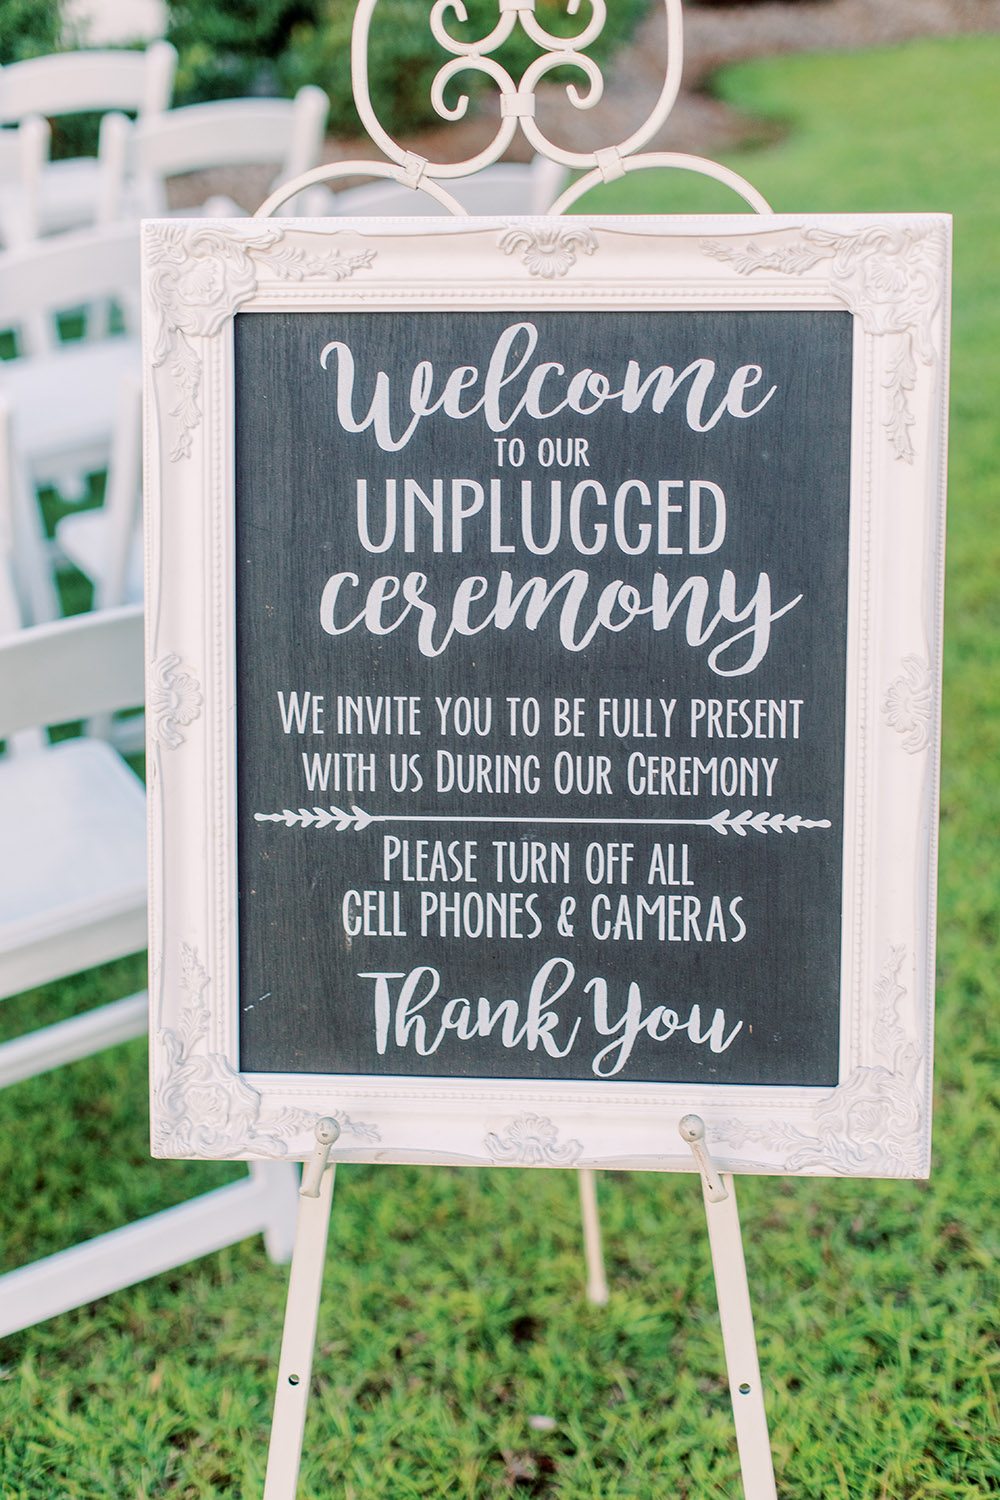 Framed chalkboard sign welcoming guests to an unplugged wedding ceremony. Photo: Ashley Kristen Photography